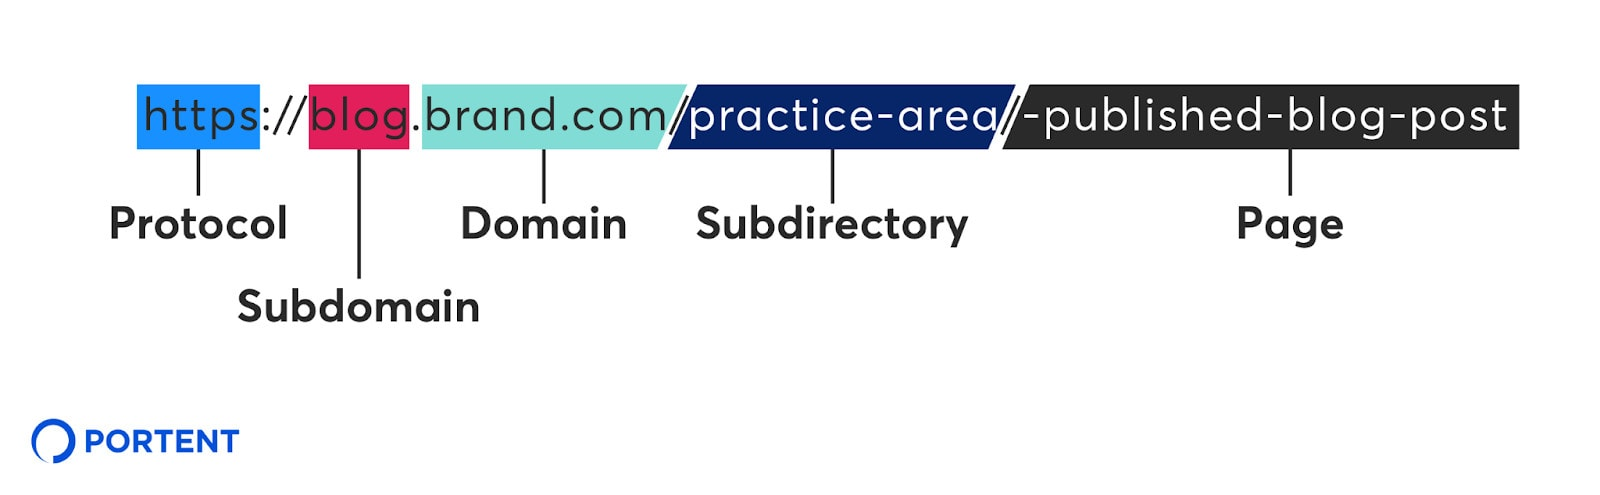 An example of effective URL structure for global SEO.